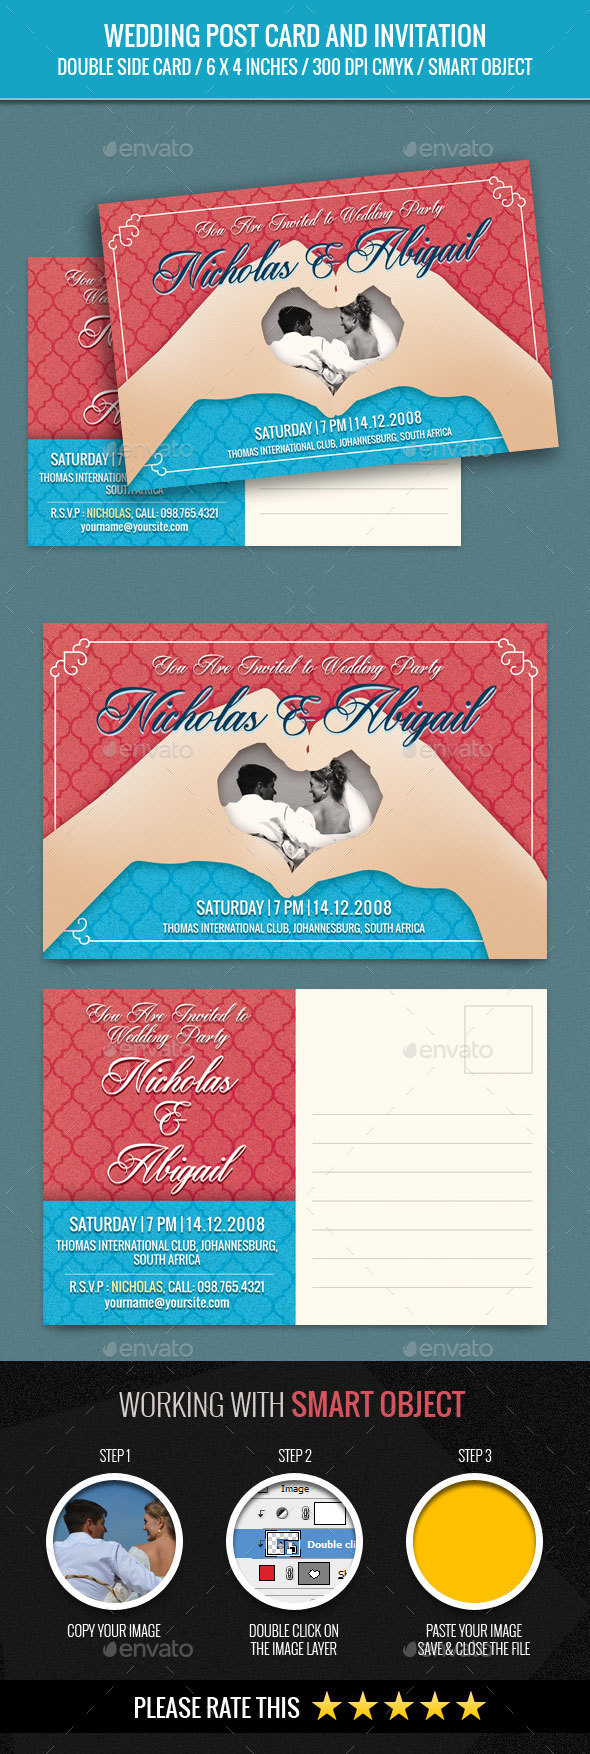 Wedding Invitation Post Card Template - Weddings Cards & Invites